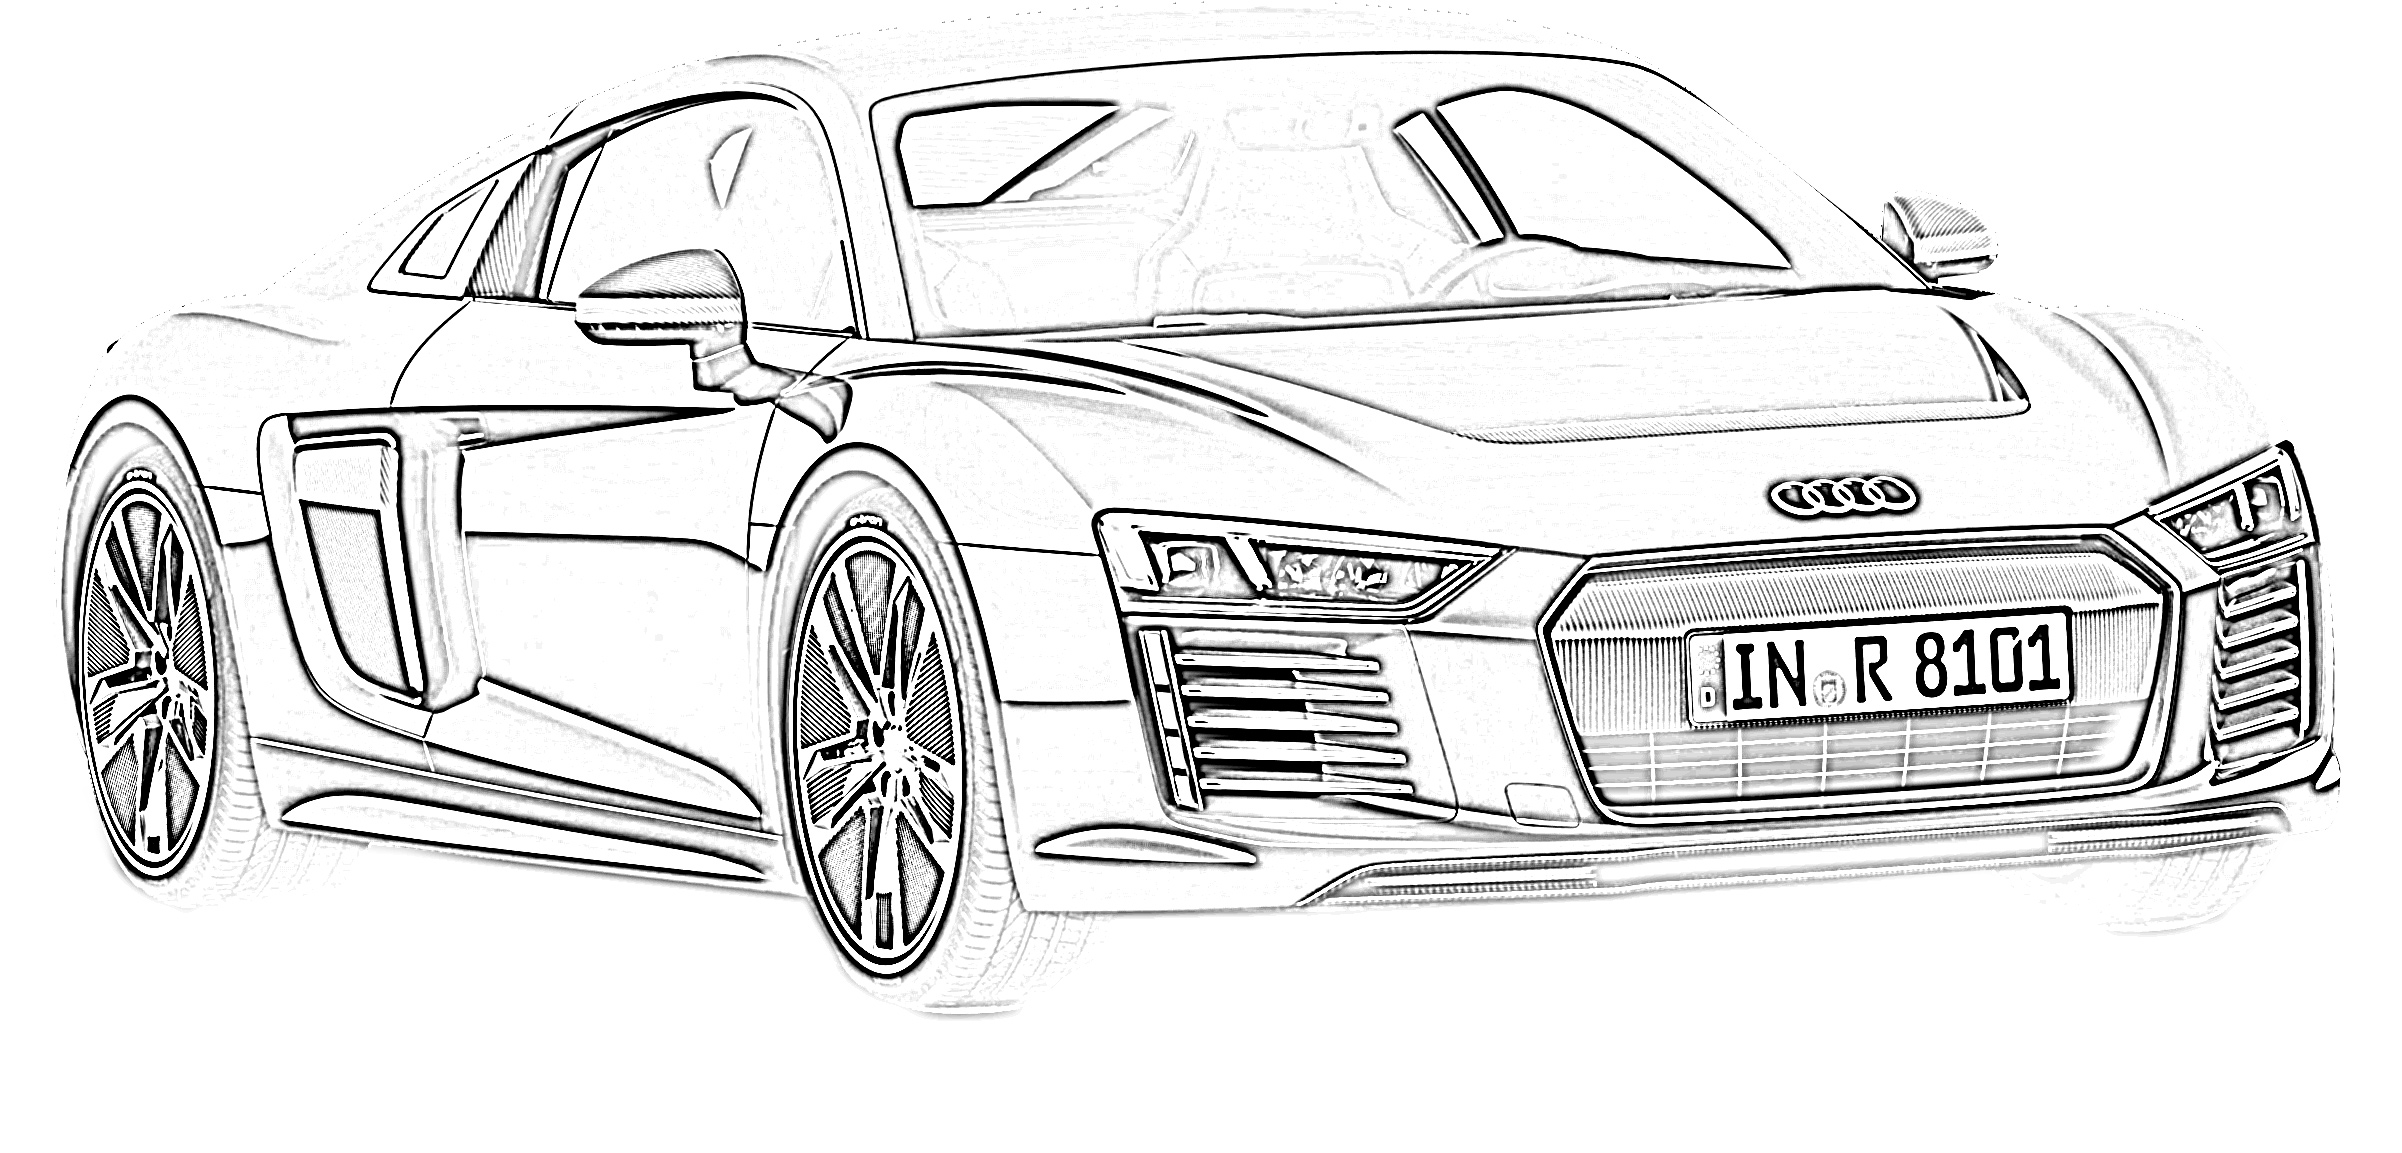 17 Free Sports Car Coloring Pages for Kids | Save, Print ...